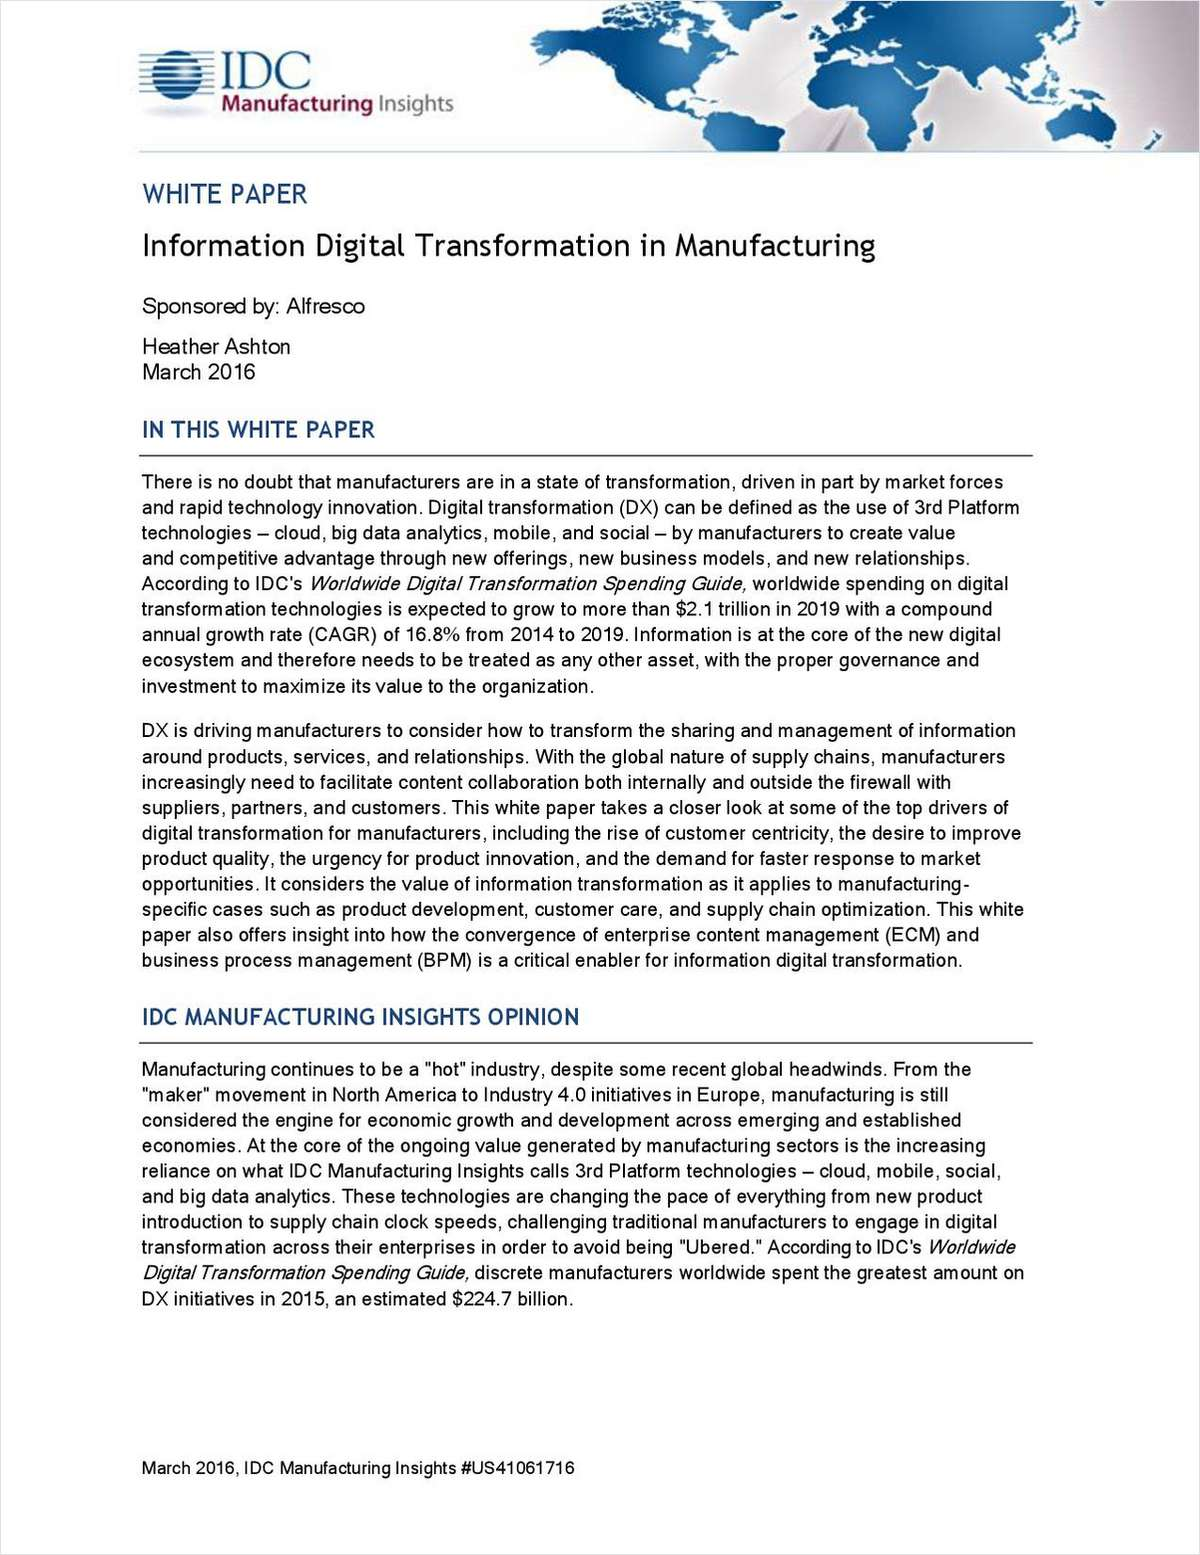 Information Digital Transformation in Manufacturing